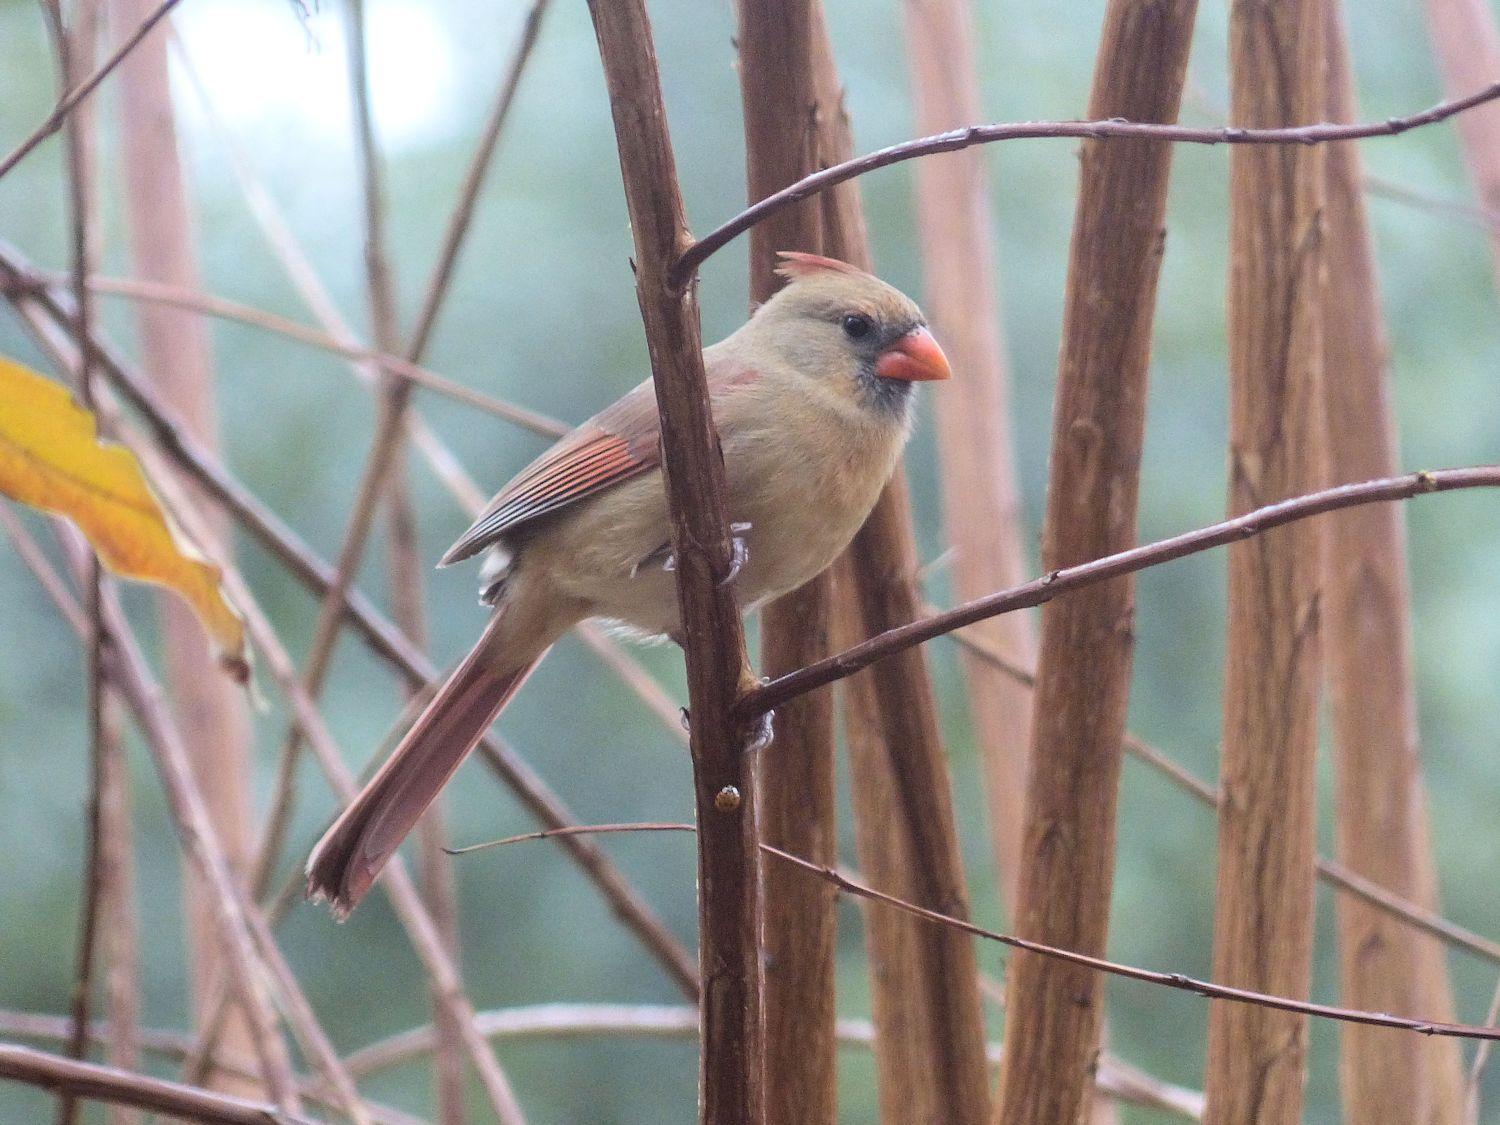 Female Cardinal being cautious